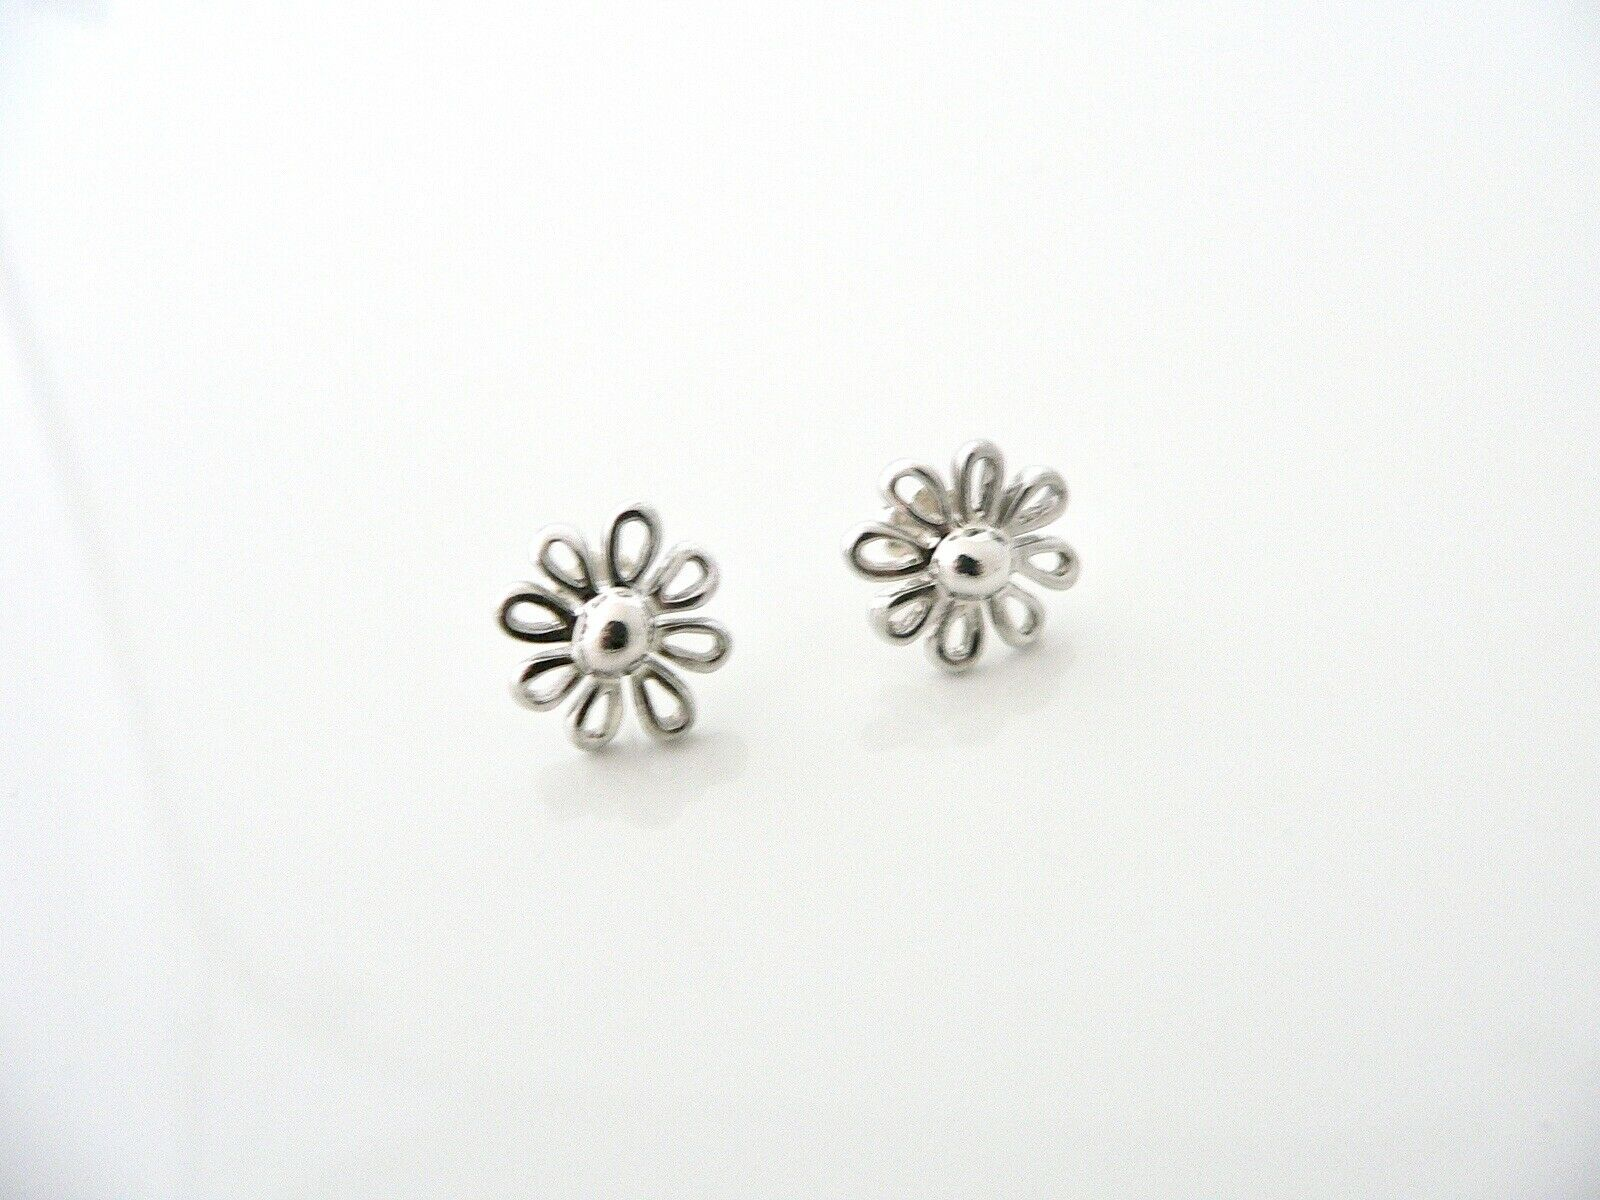 Tiffany & Co Silver Daisy Flower Earrings Studs Picasso Nature Lover Gift Art